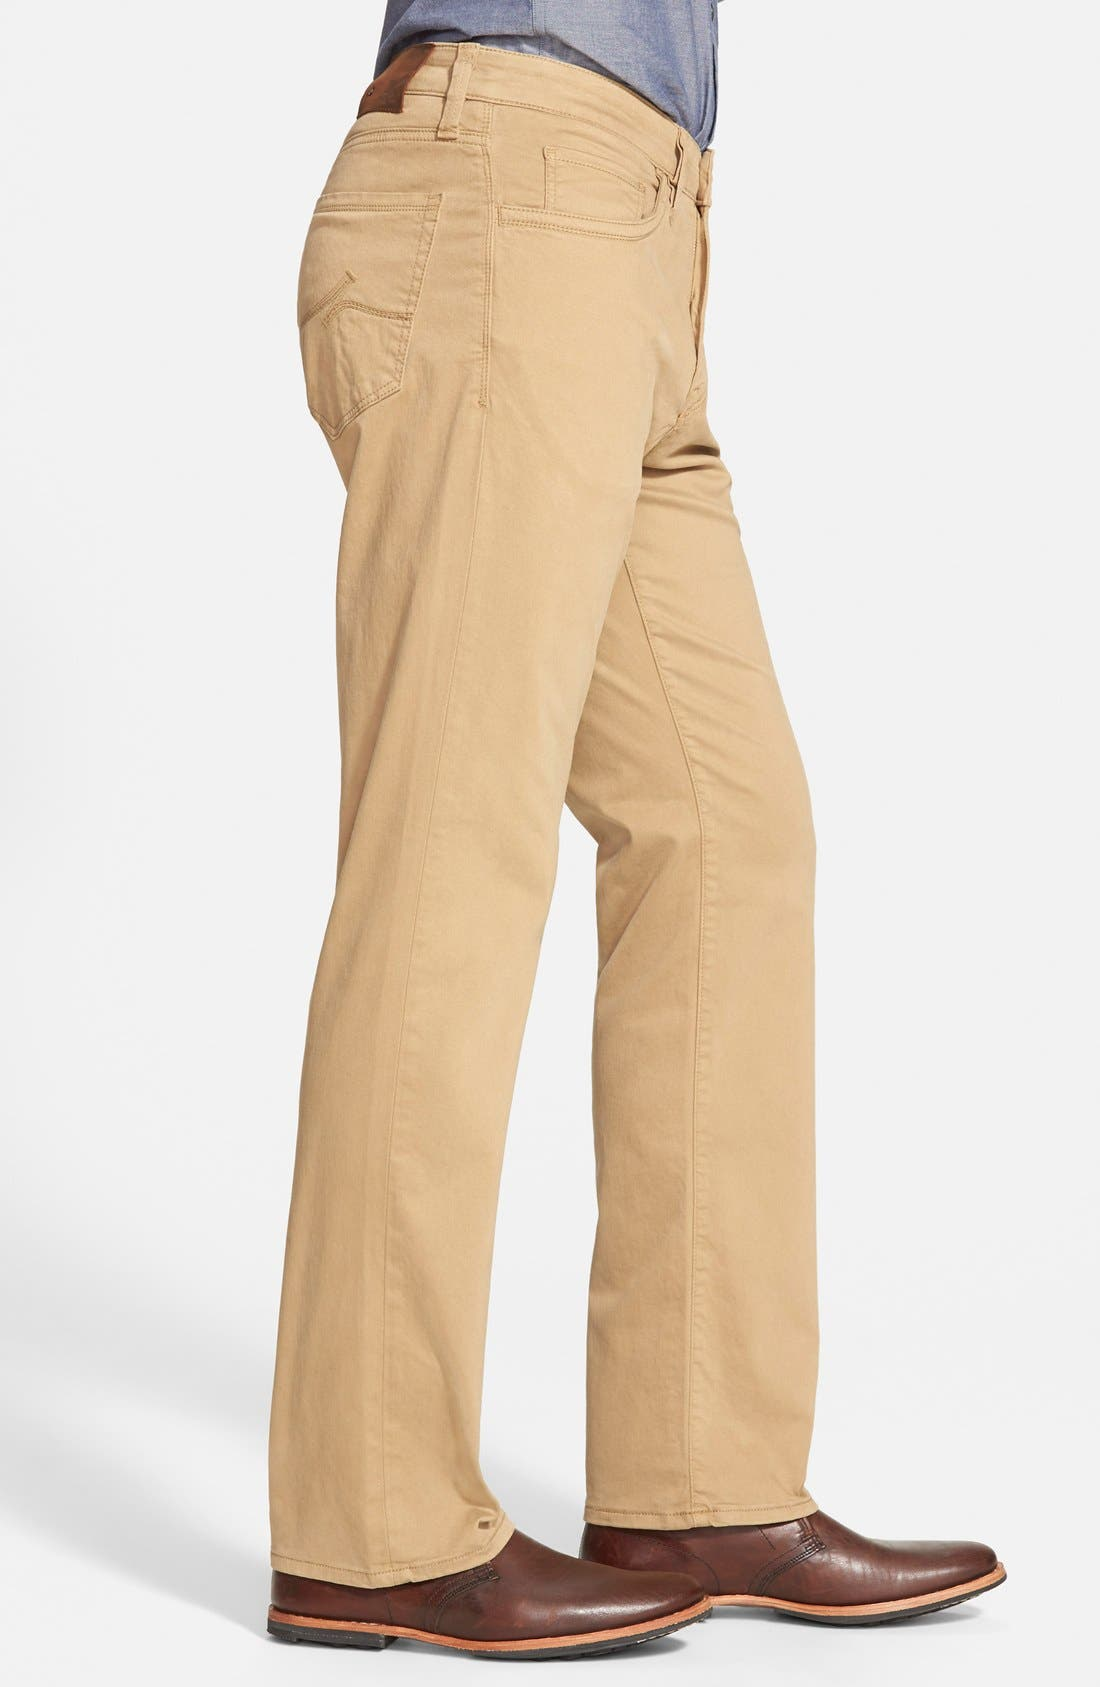 'Charisma' Classic Relaxed Fit Pants,                             Alternate thumbnail 3, color,                             Beige/ Khaki